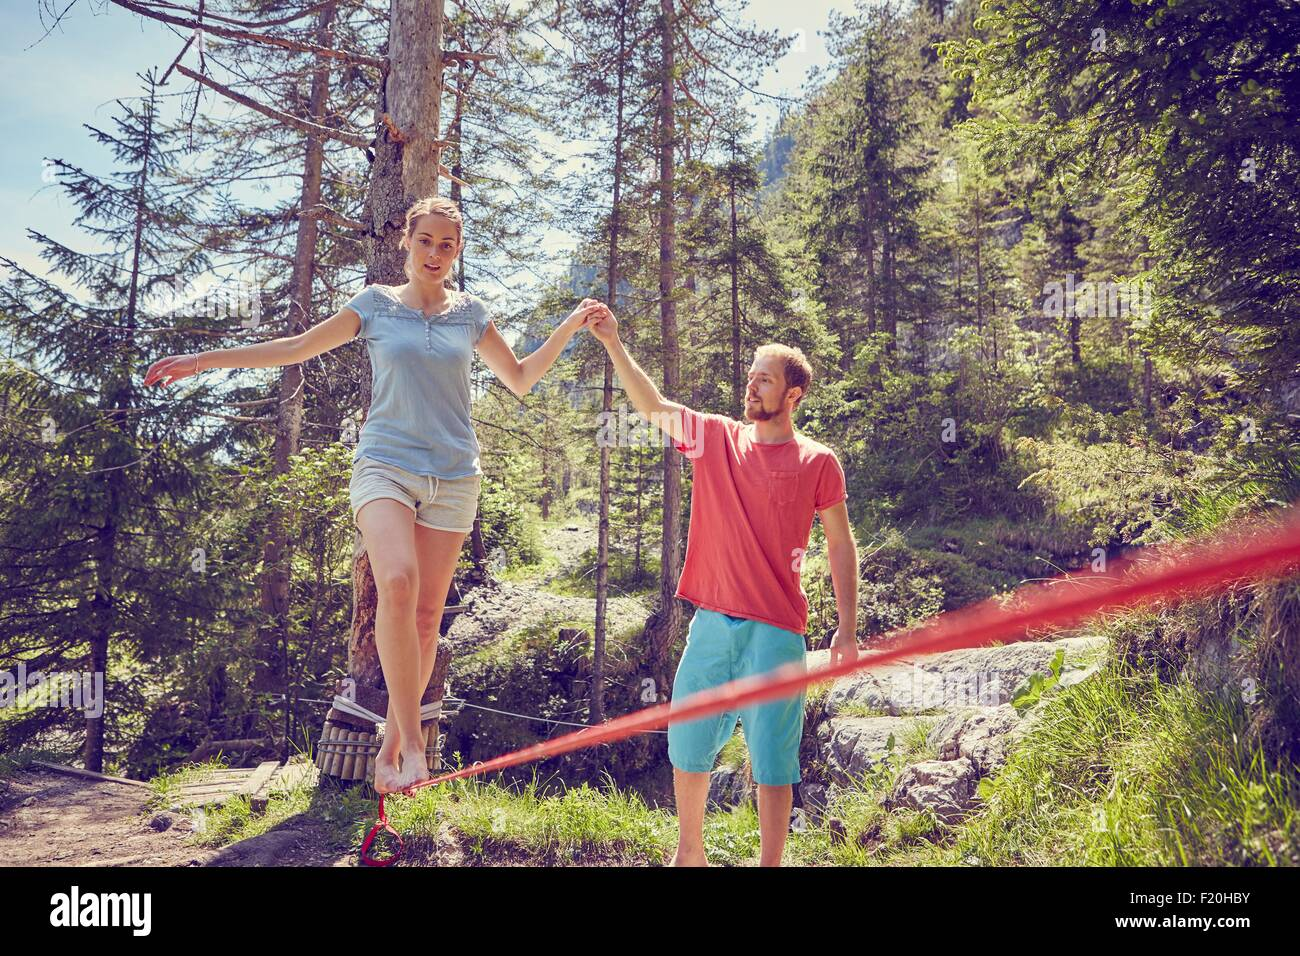 Woman balancing on rope with help from man, Ehrwald, Tyrol, Austria - Stock Image